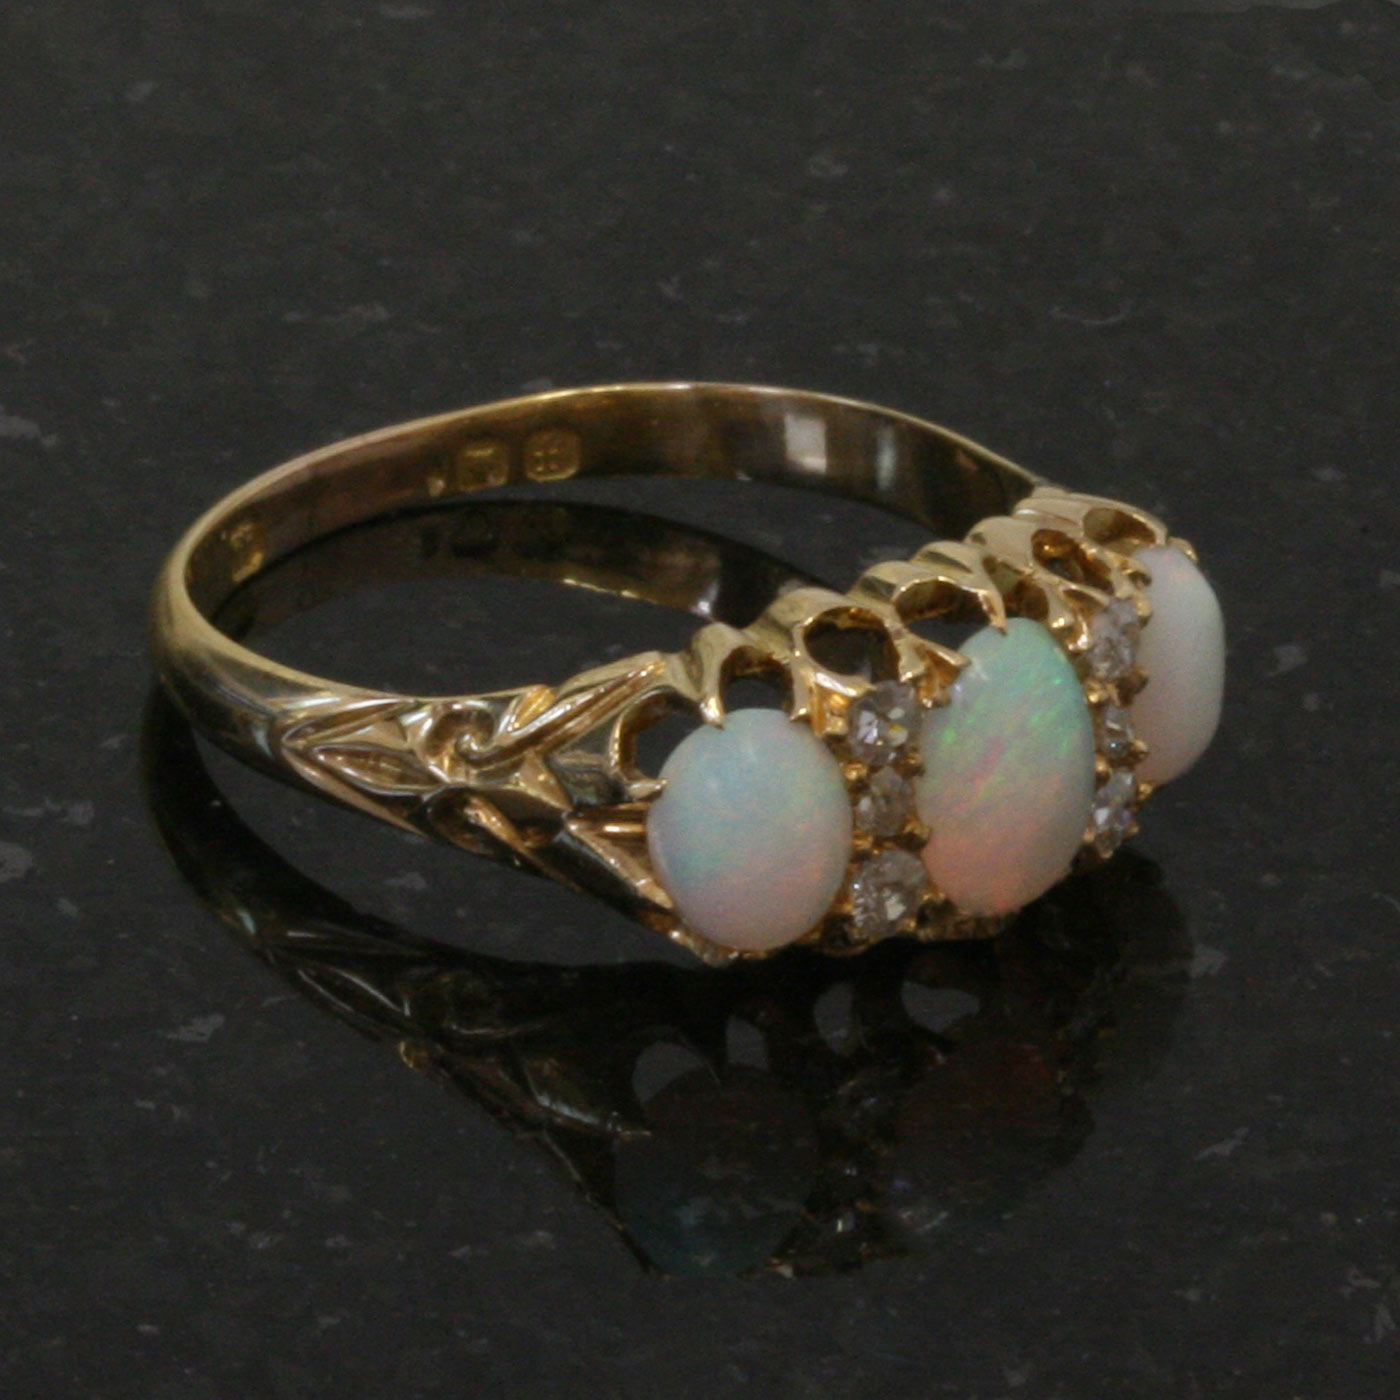 buy edwardian antique opal and ring sold items